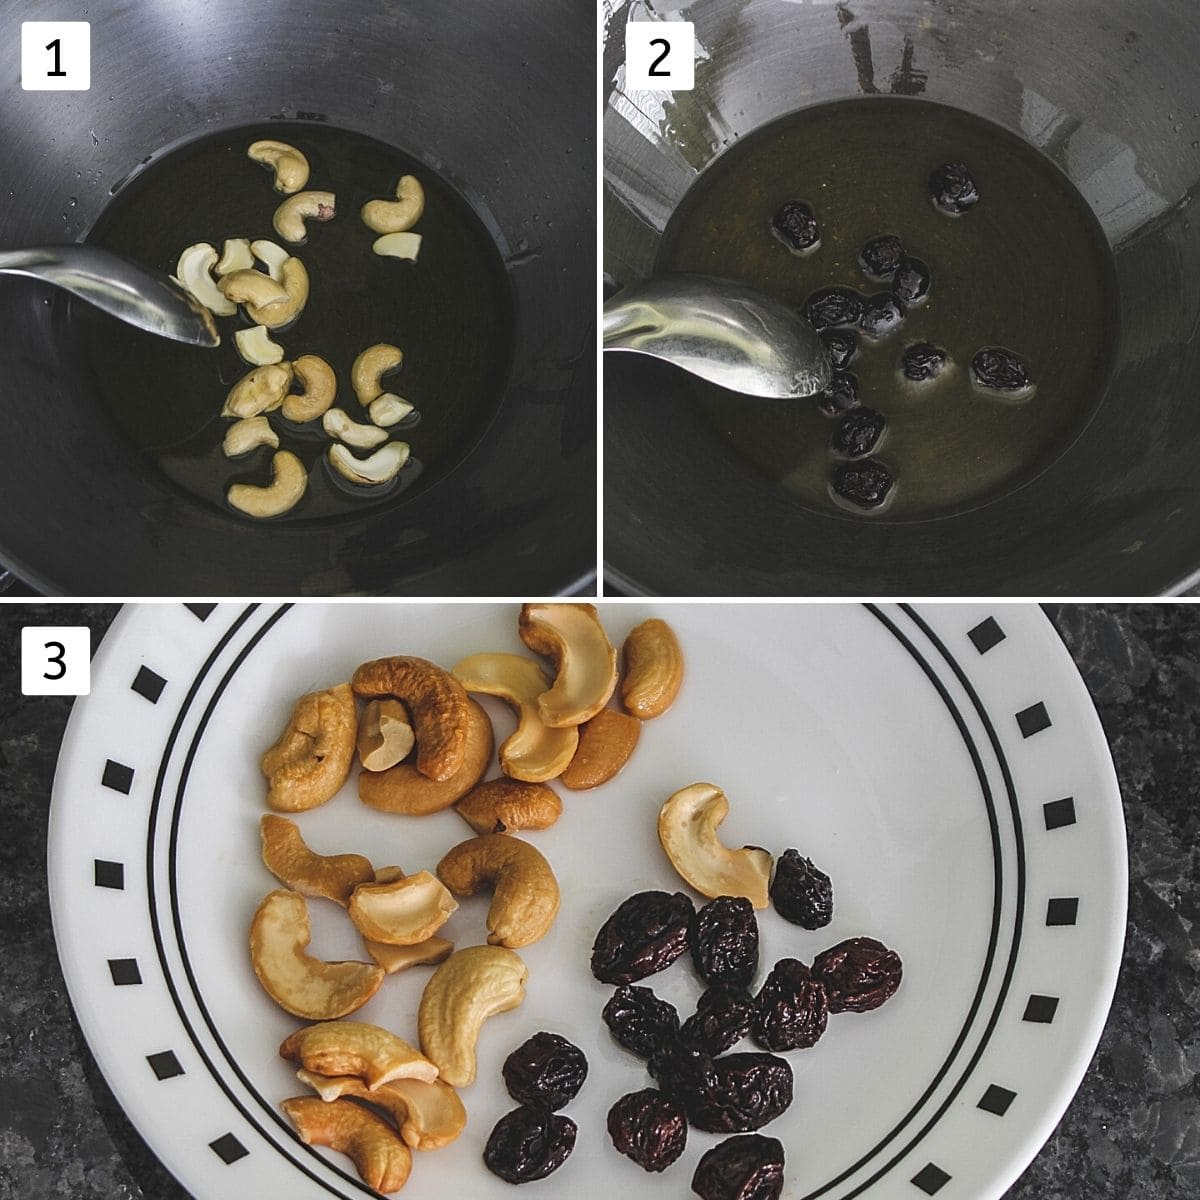 Collage of 3 images showing frying cashews, frying raisins and fried both in a plate